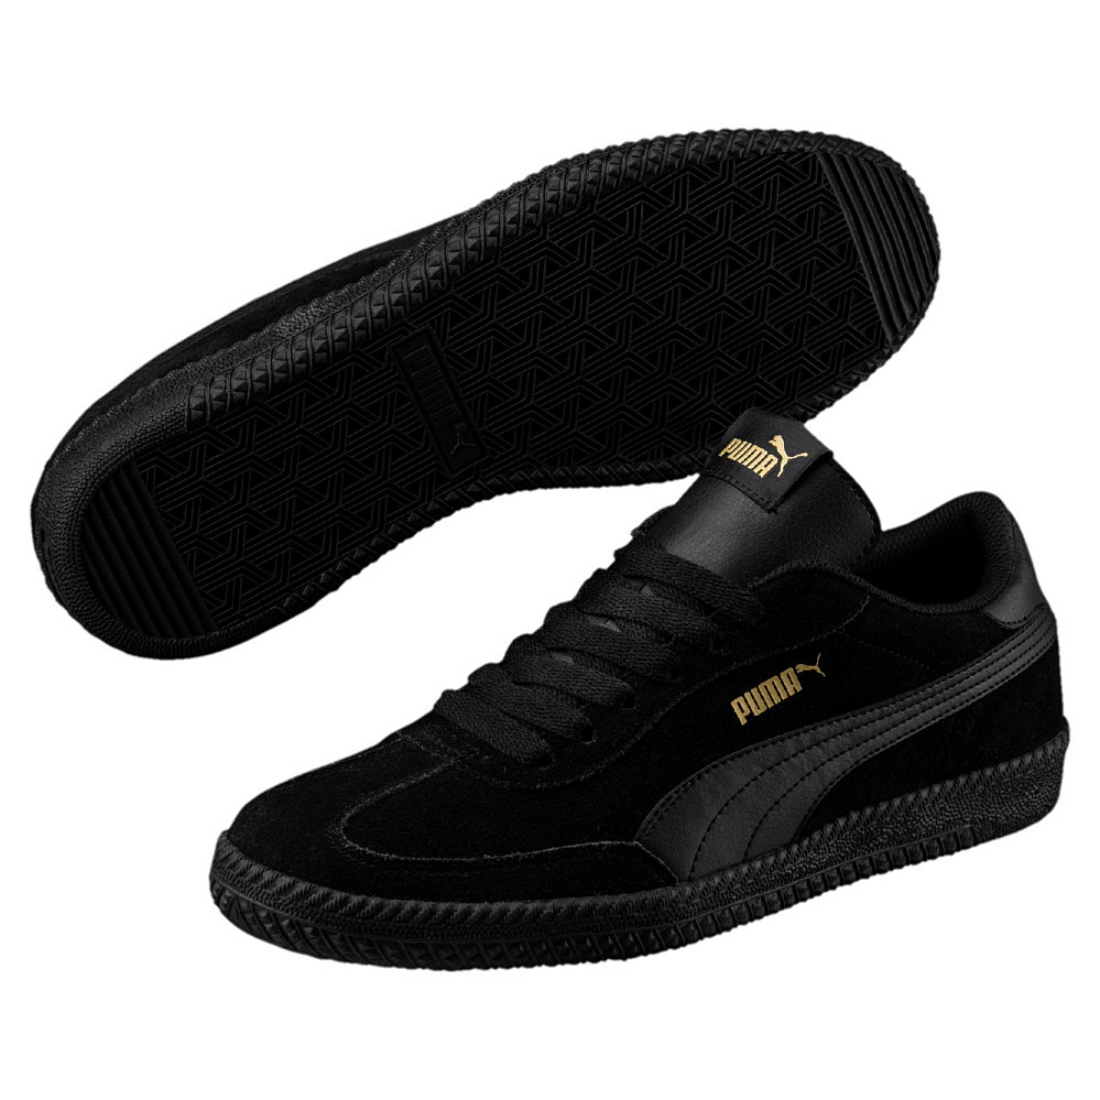 82c82dd79d34 Details about Puma Astro Cup Suede 364423 Retro Sneakers Shoes Icon Black  Clean Look